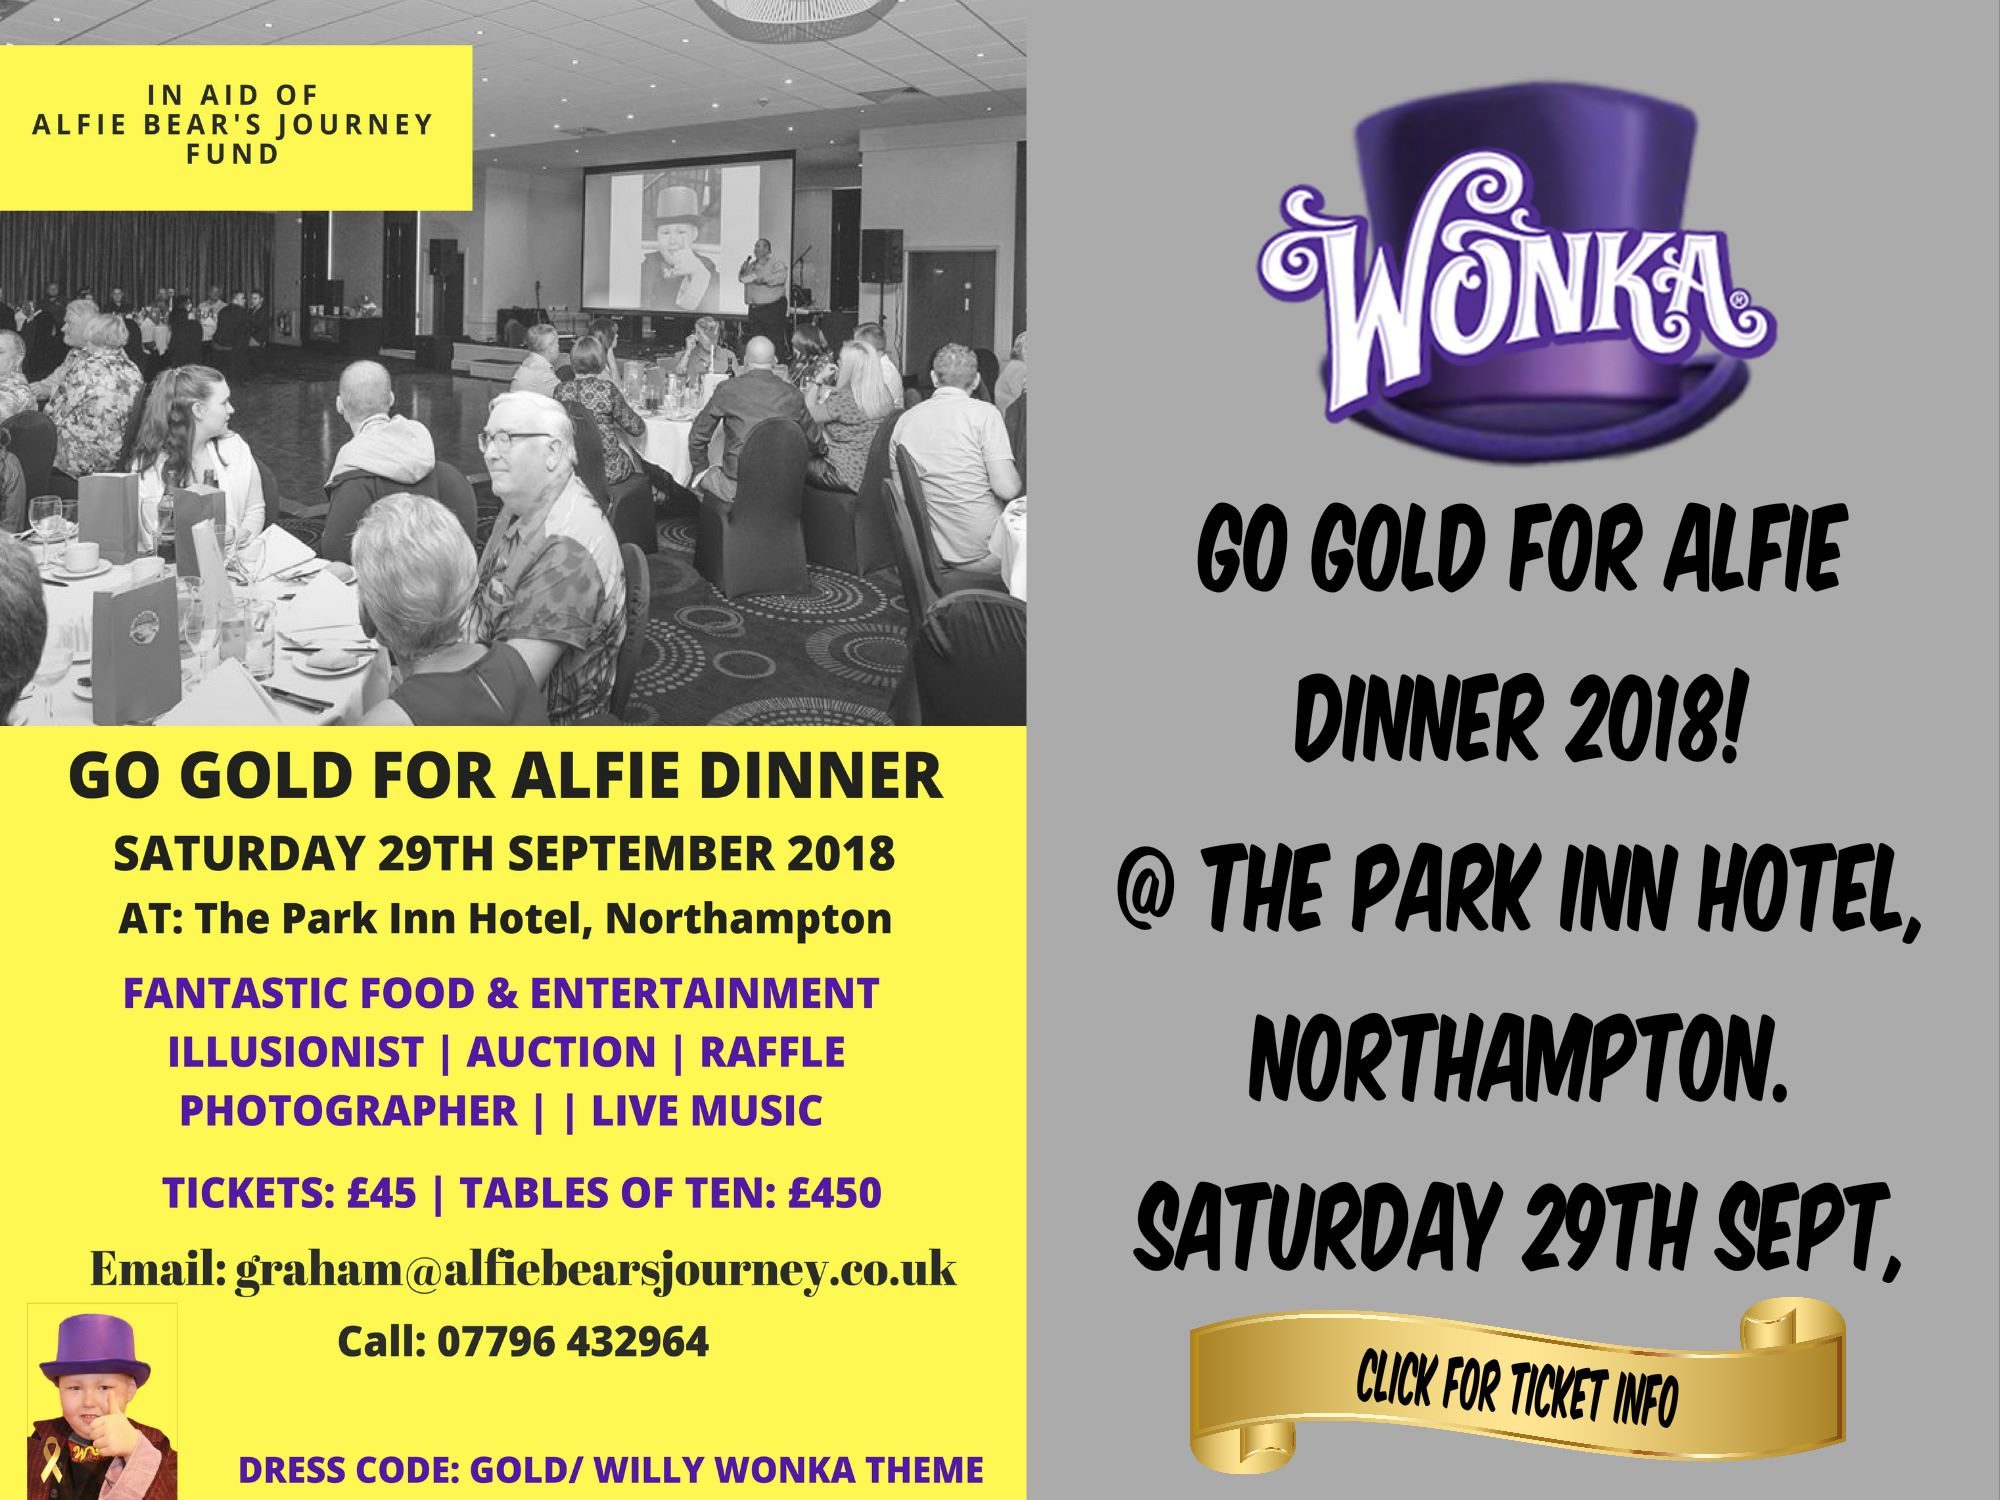 Go Gold for Alfie Dinner 2018